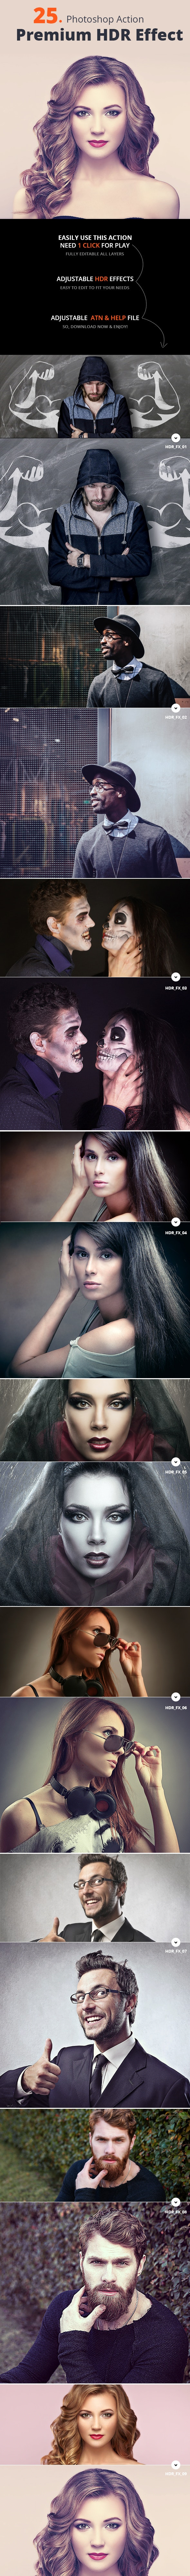 25 Premium HDR Effect Action - Photo Effects Actions